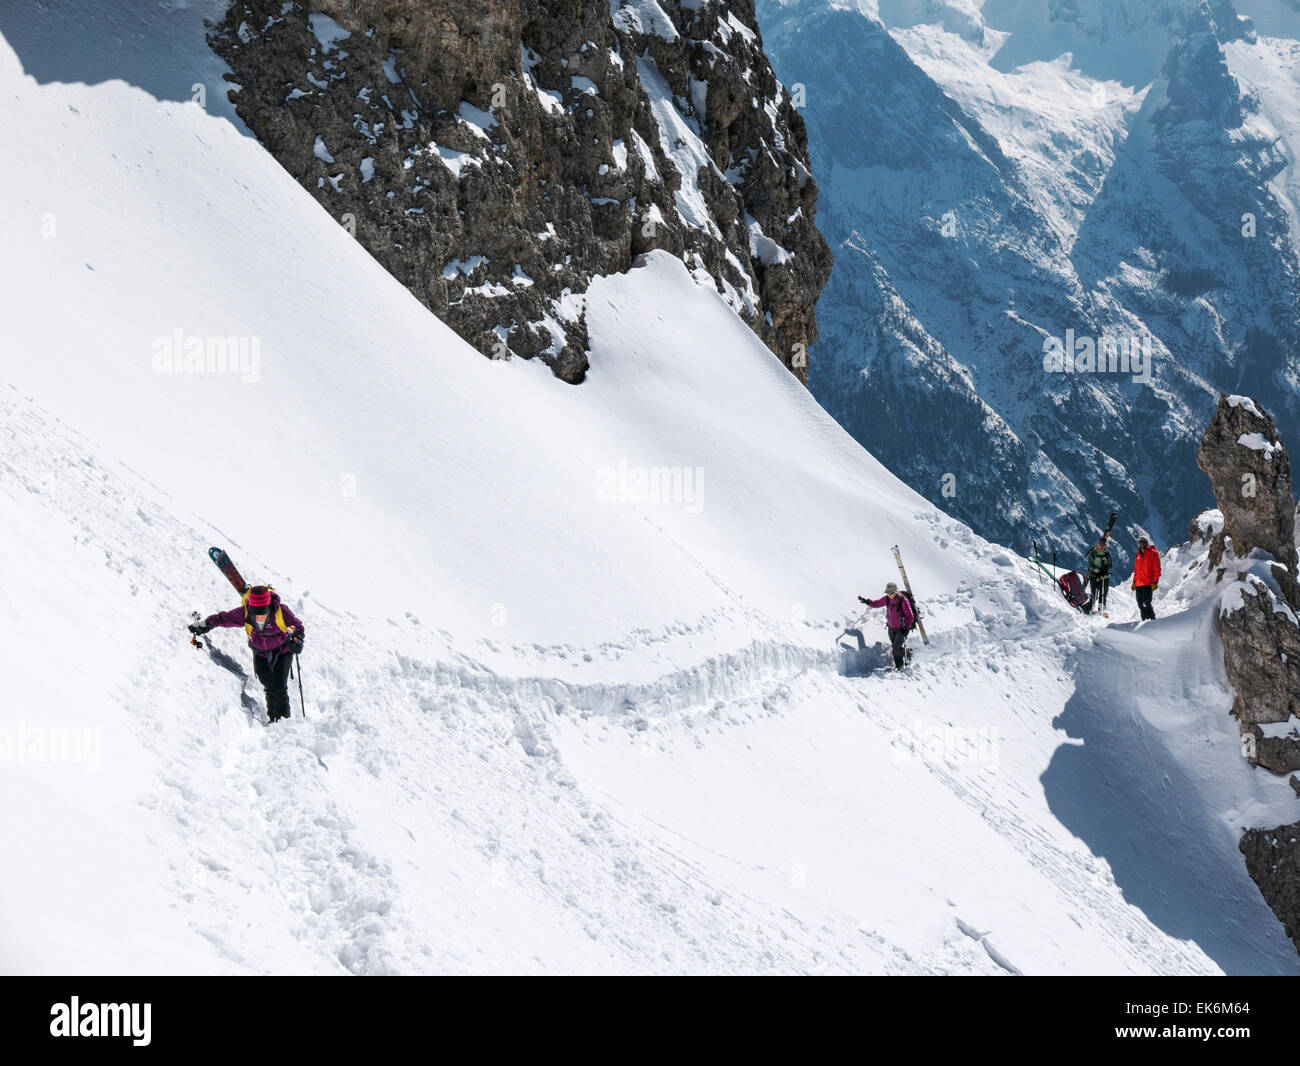 Backcountry skiers traversing steep slope, northeast of Cortina, Dolomite Mountains, Alps, Italy - Stock Image